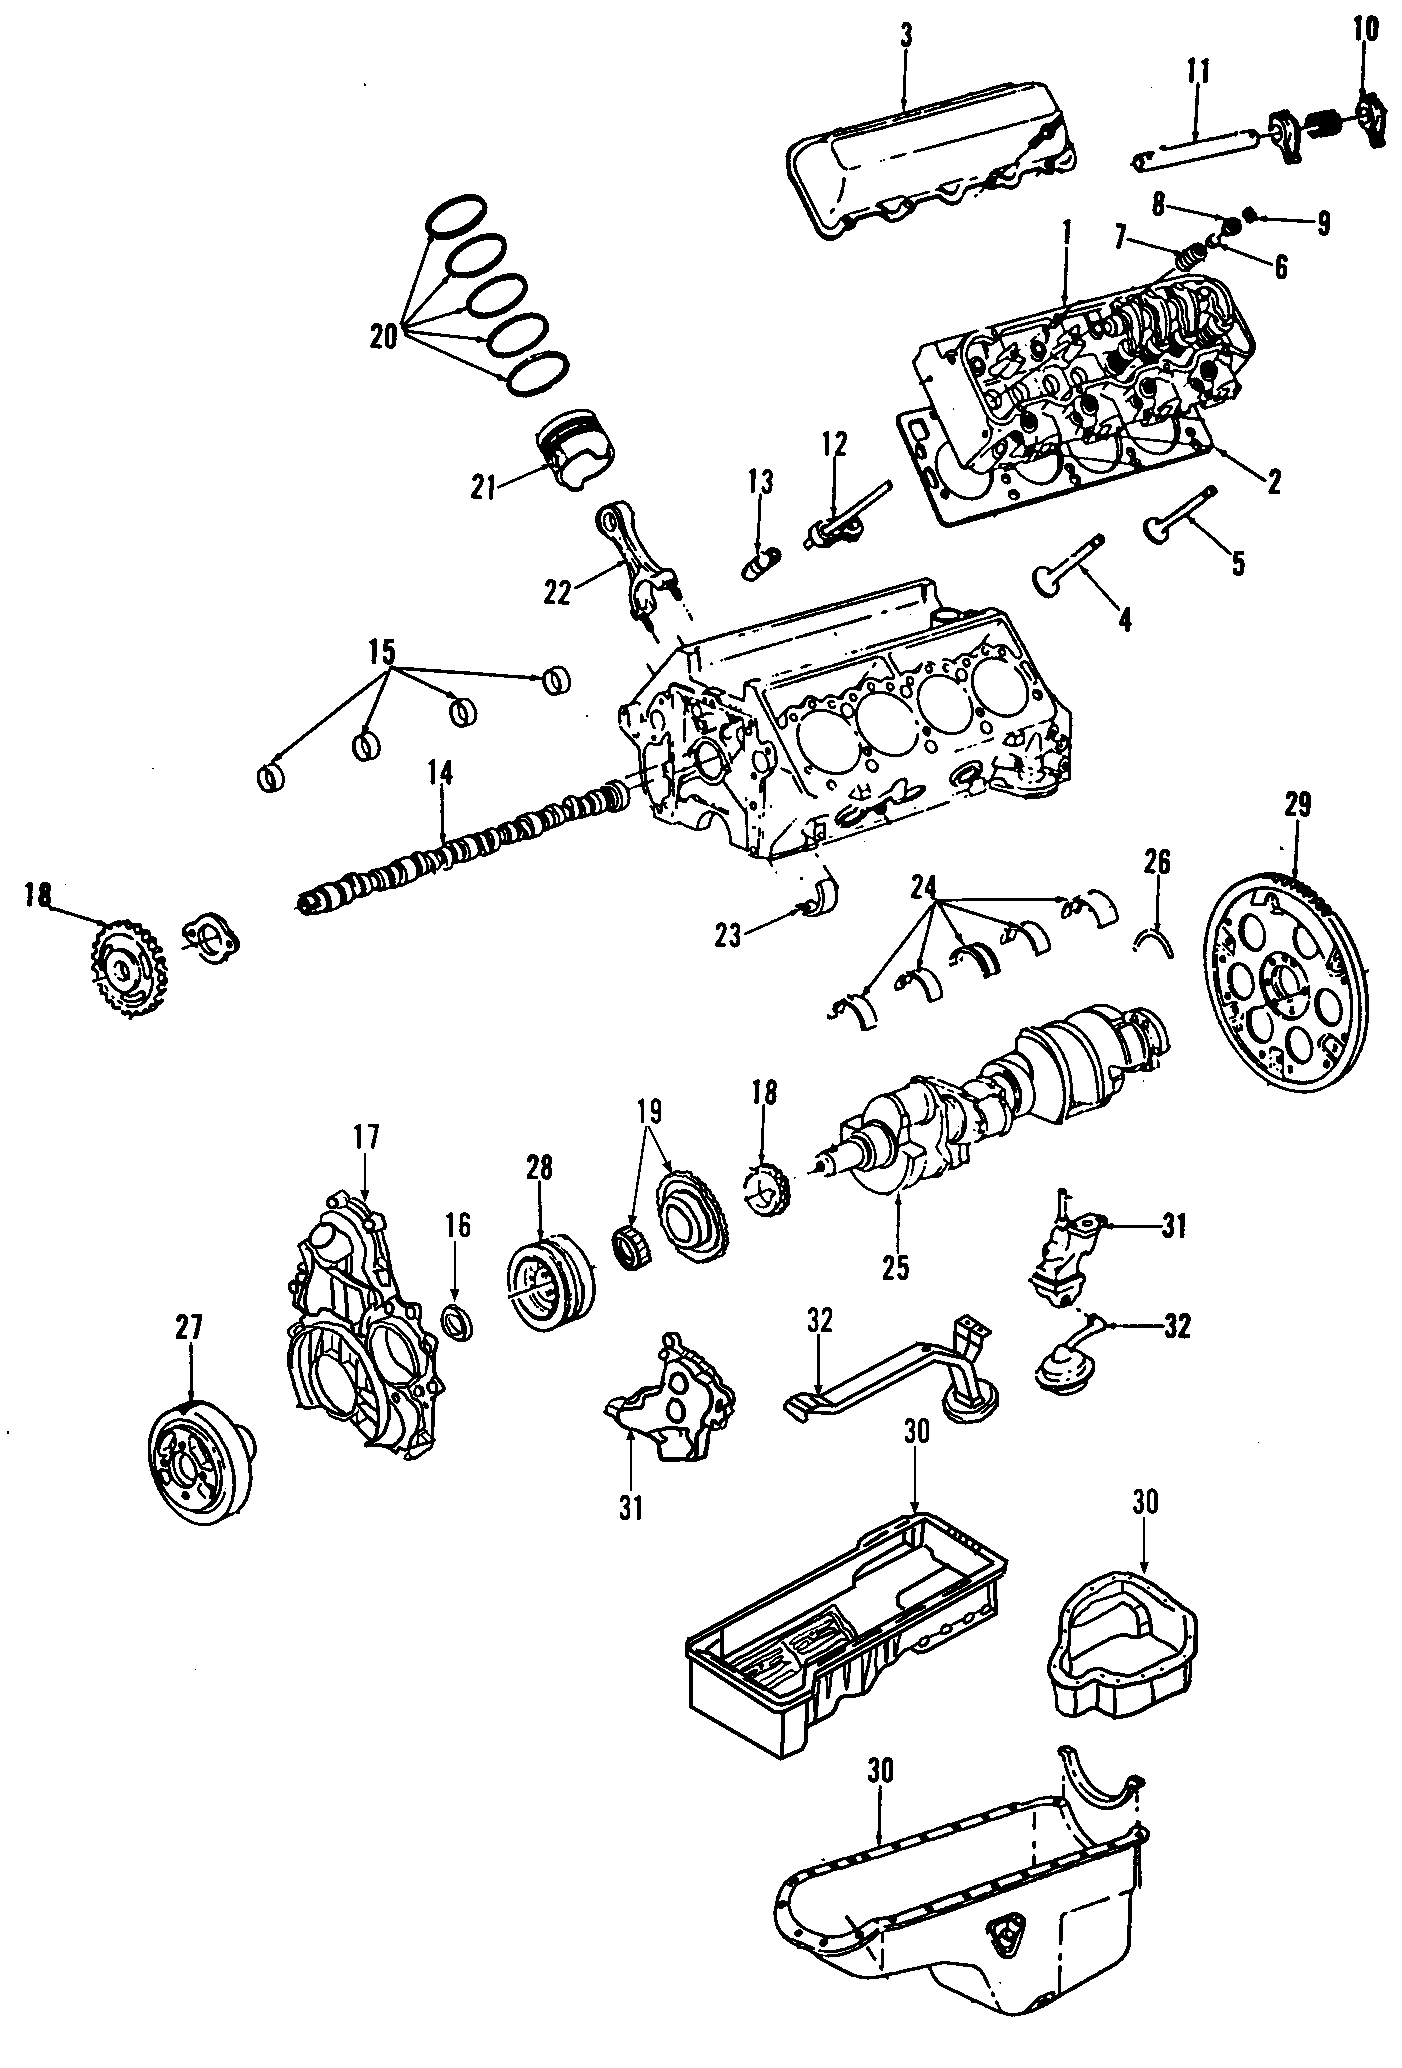 Pan Oil Engine Lower